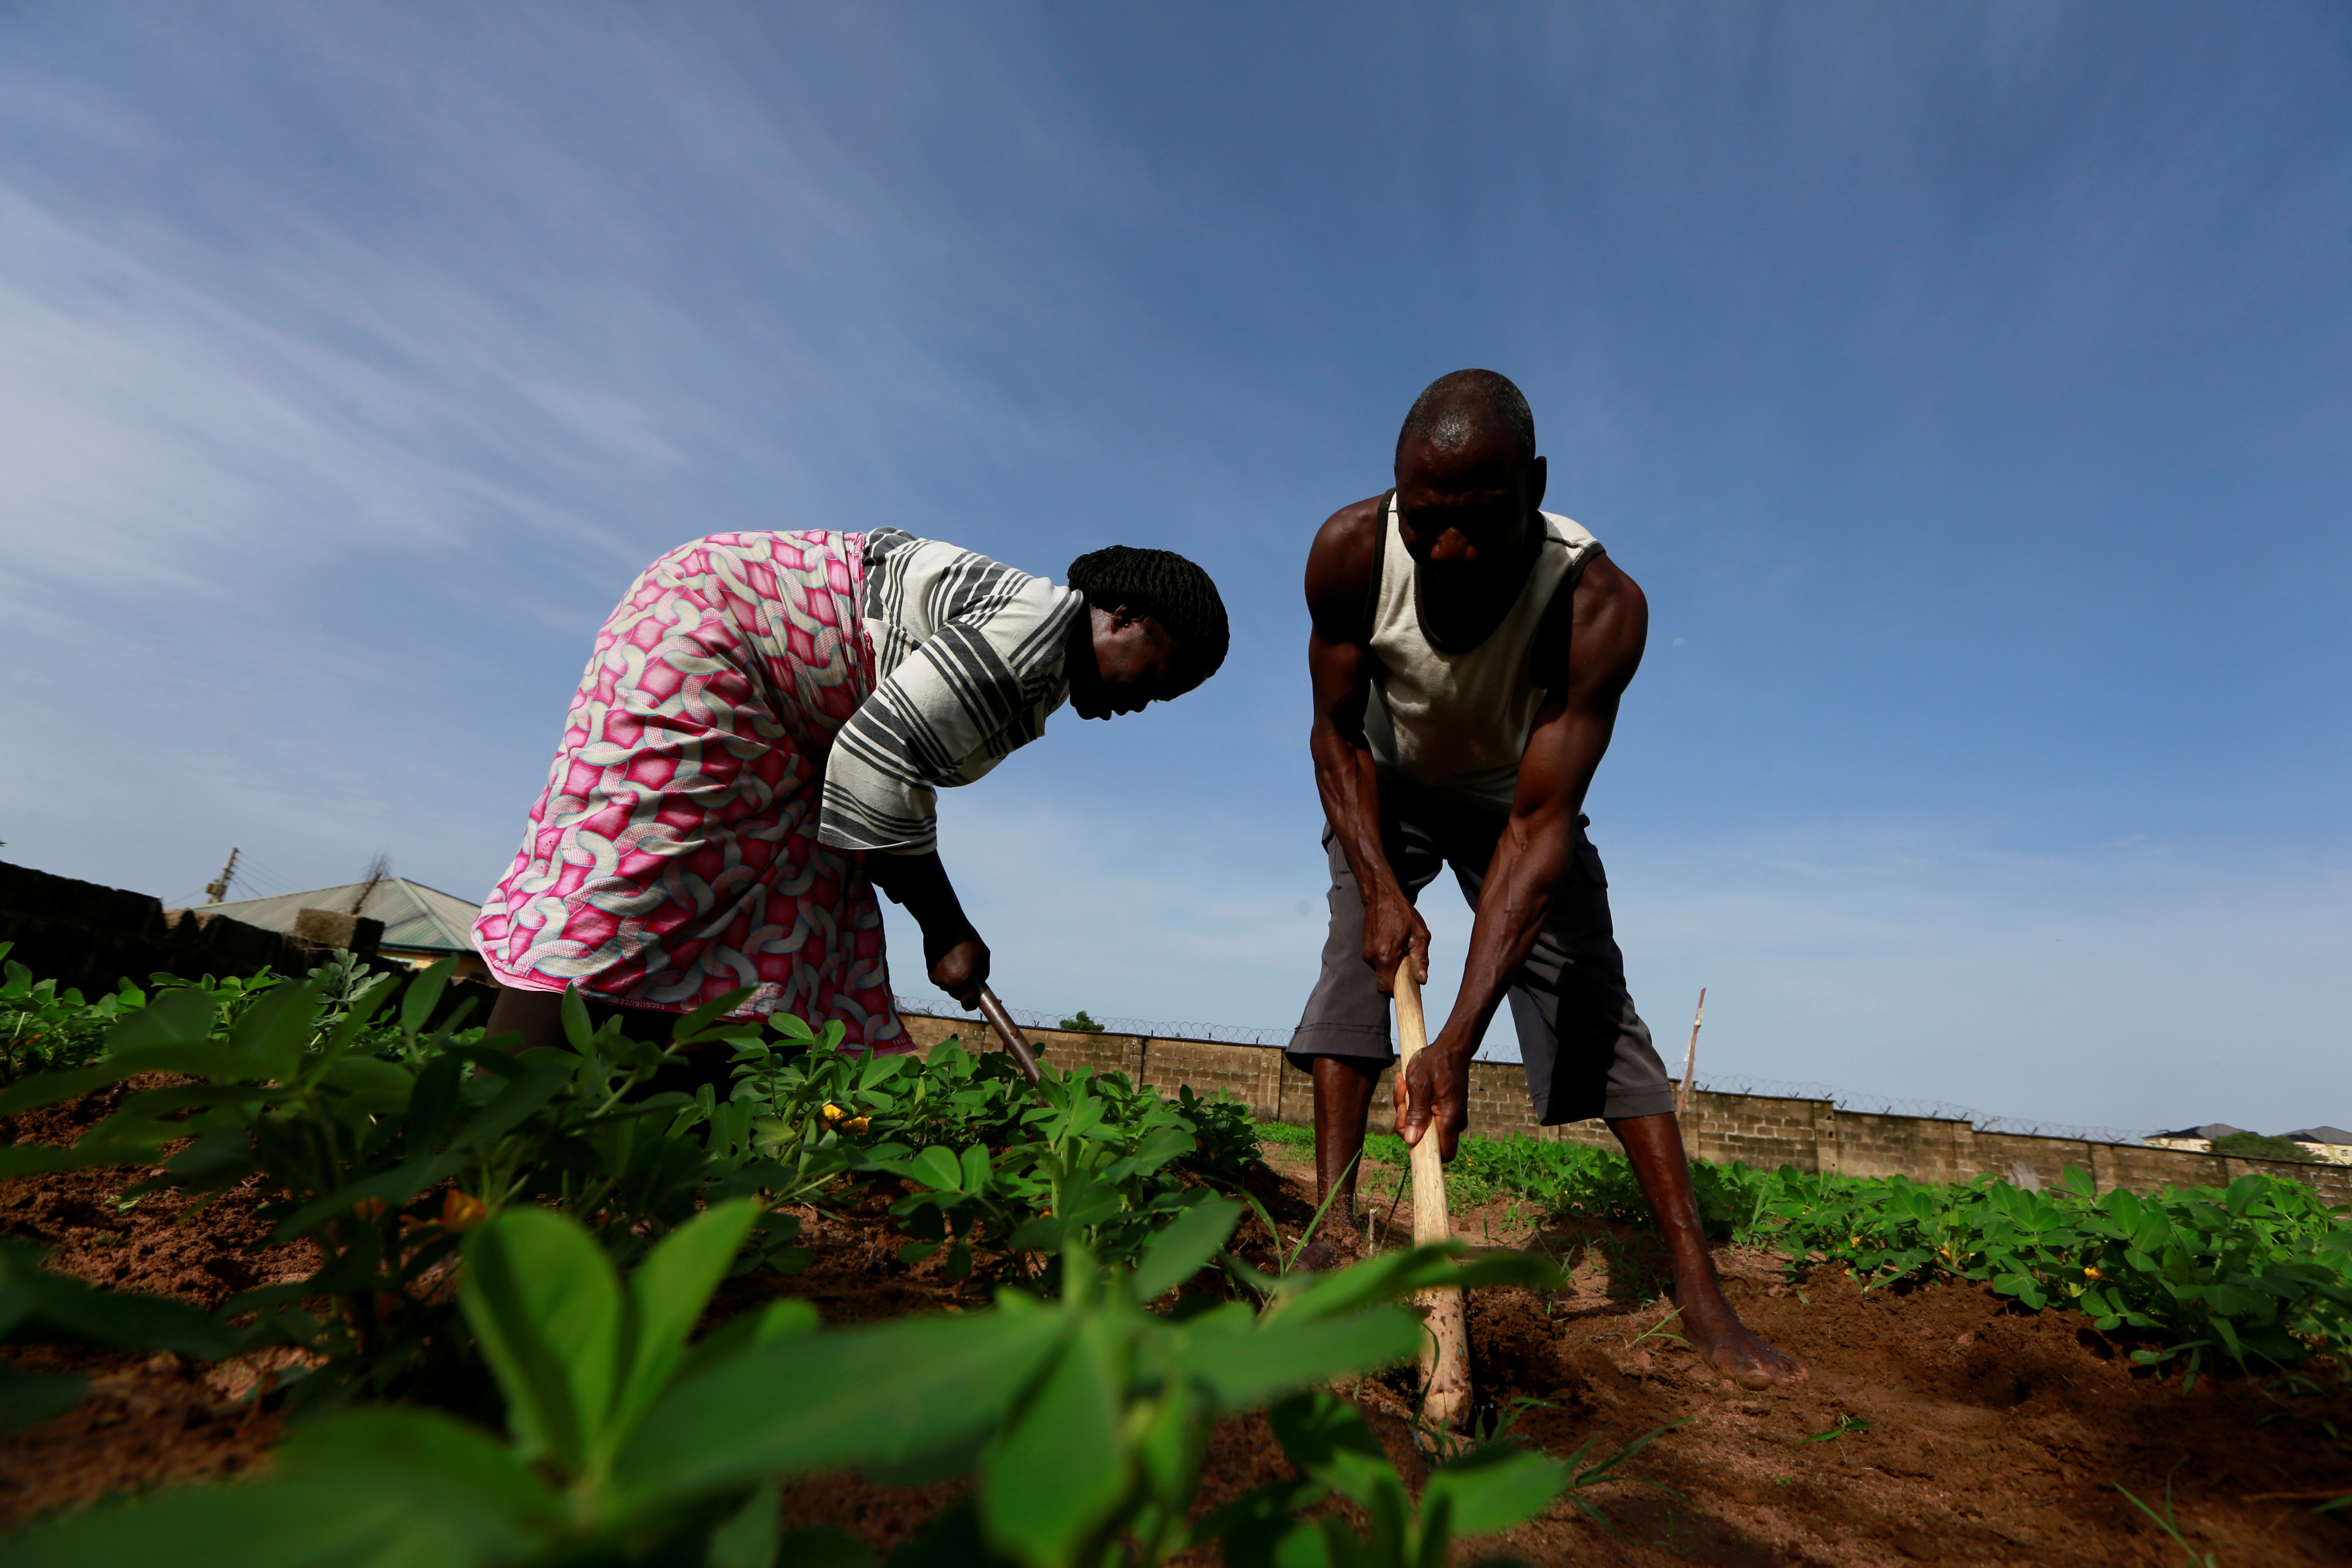 Ajege Zacharia and wife Victoria Kigbu work on their farm in the midst of the coronavirus disease (COVID-19) outbreak in Abuja, Nigeria June 10, 2020. Picture taken June 10, 2020.